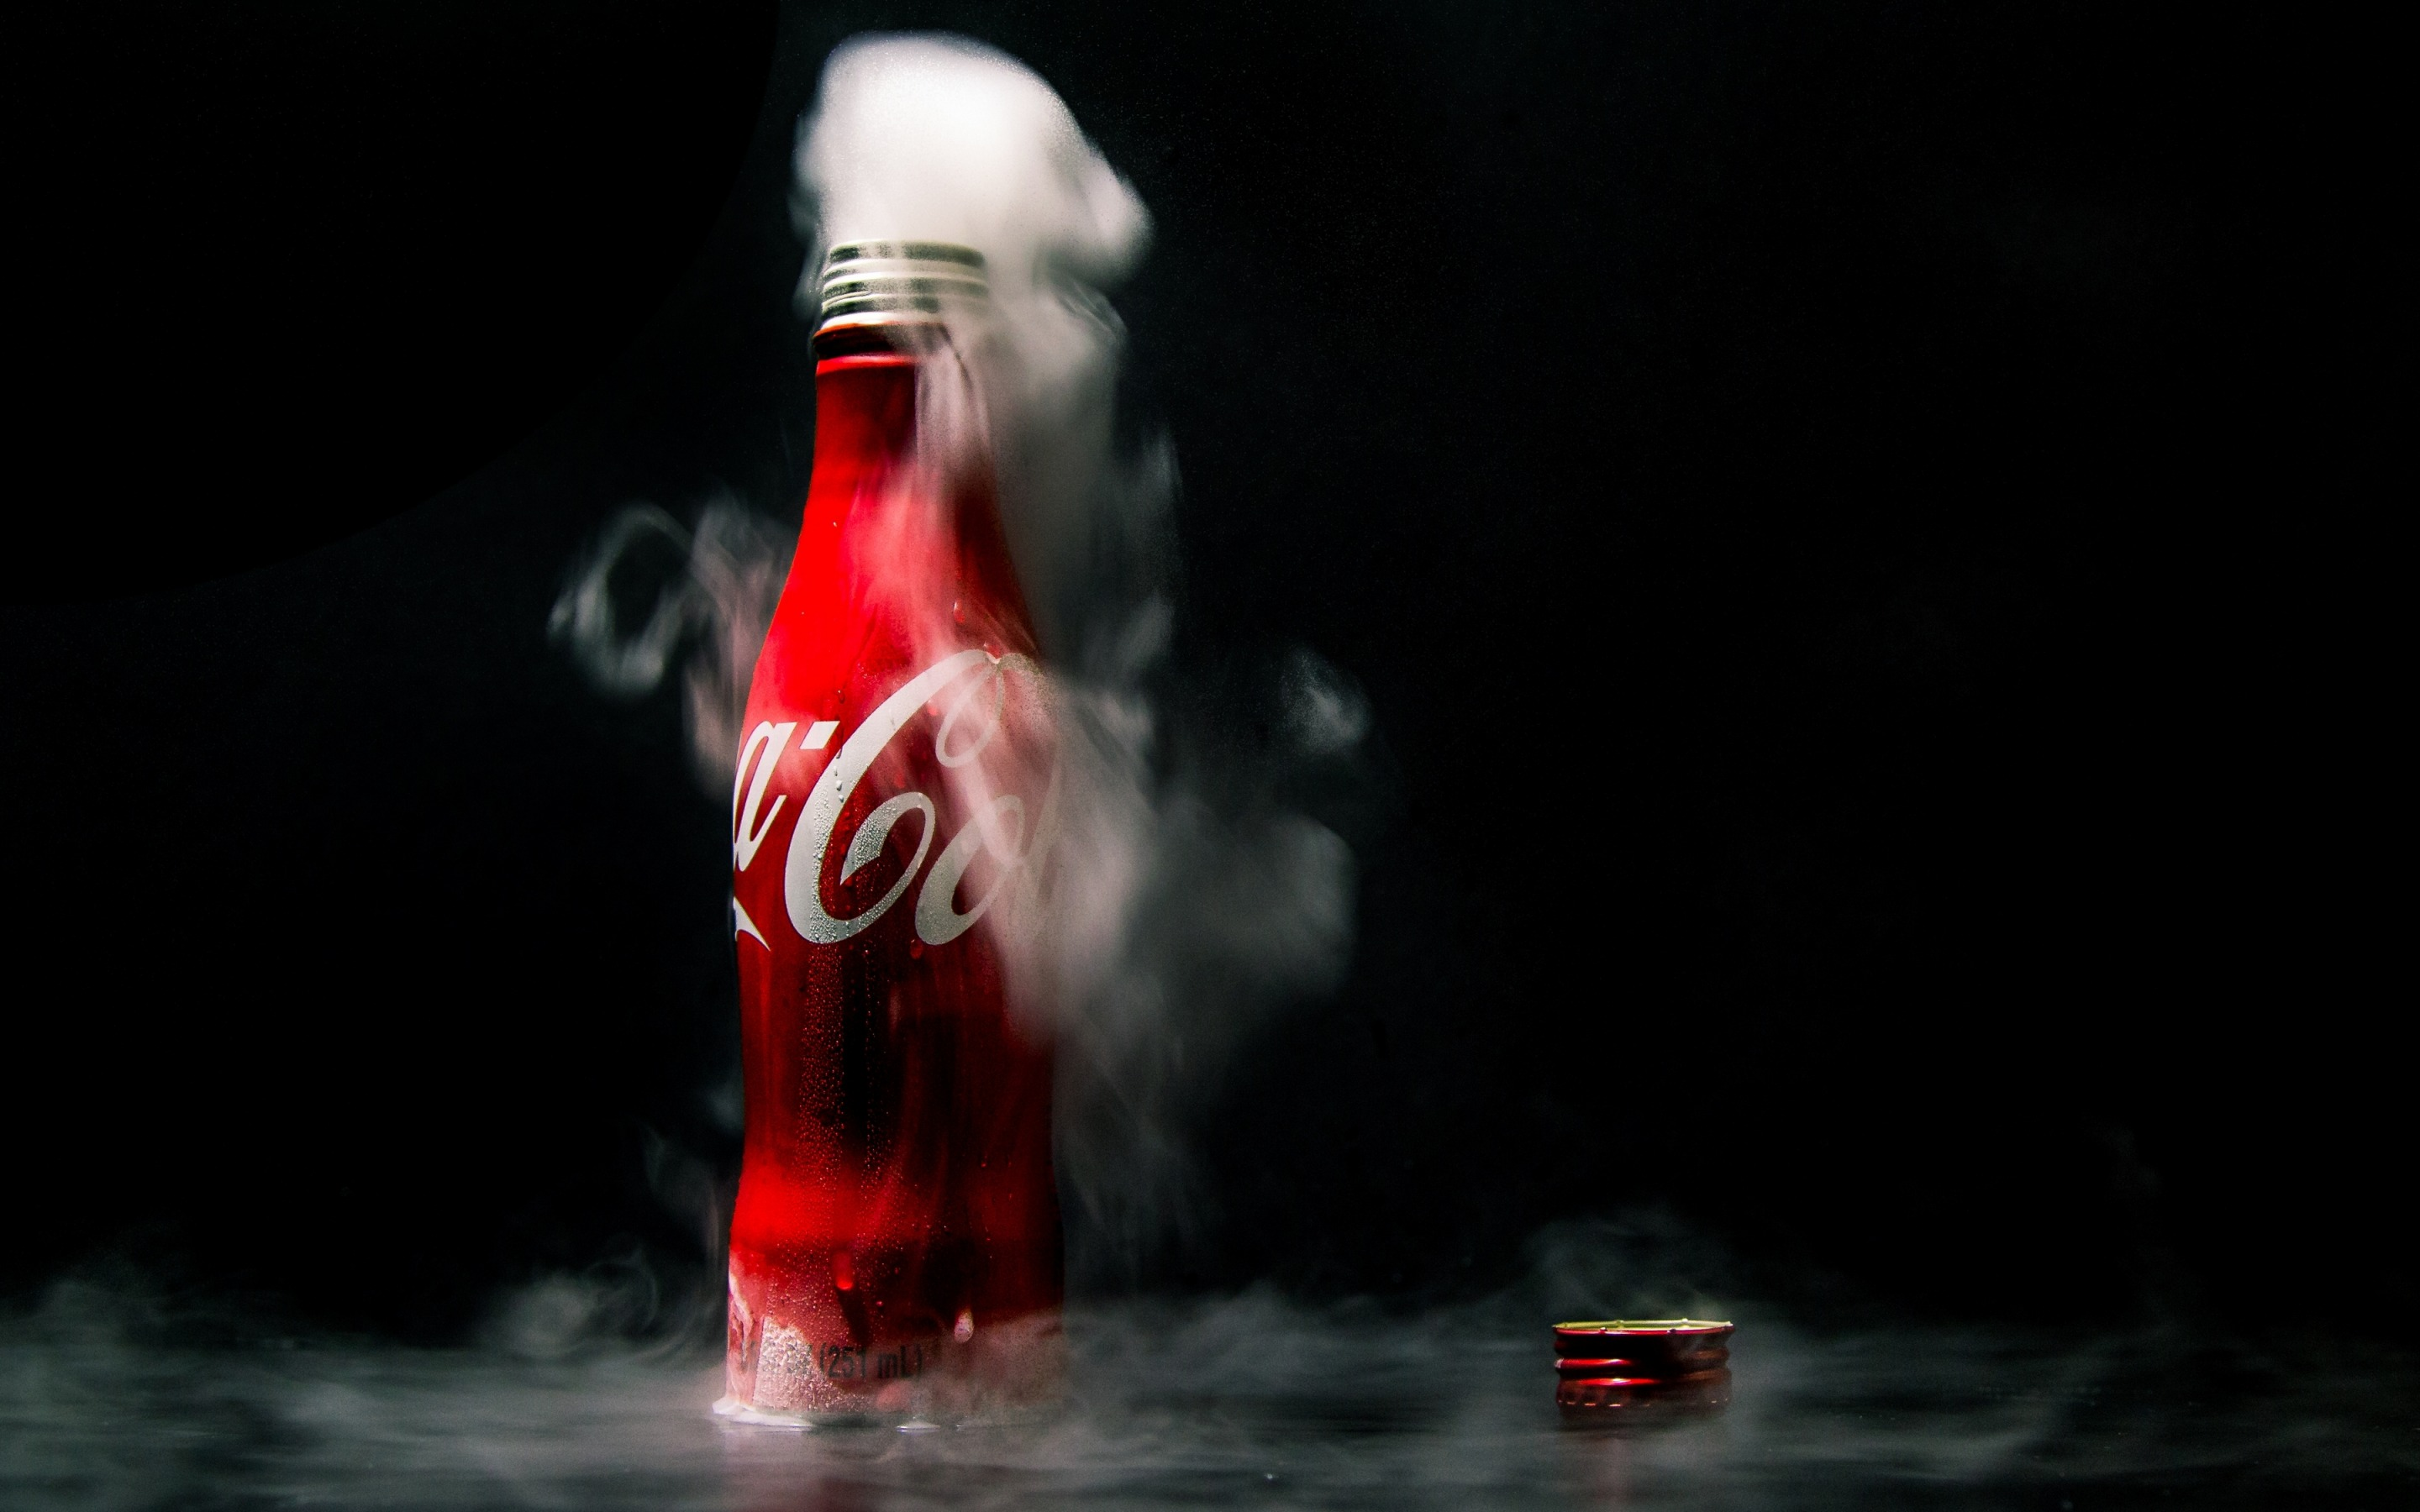 Coca cola hd others 4k wallpapers images backgrounds photos and pictures - Vintage coke wallpaper ...